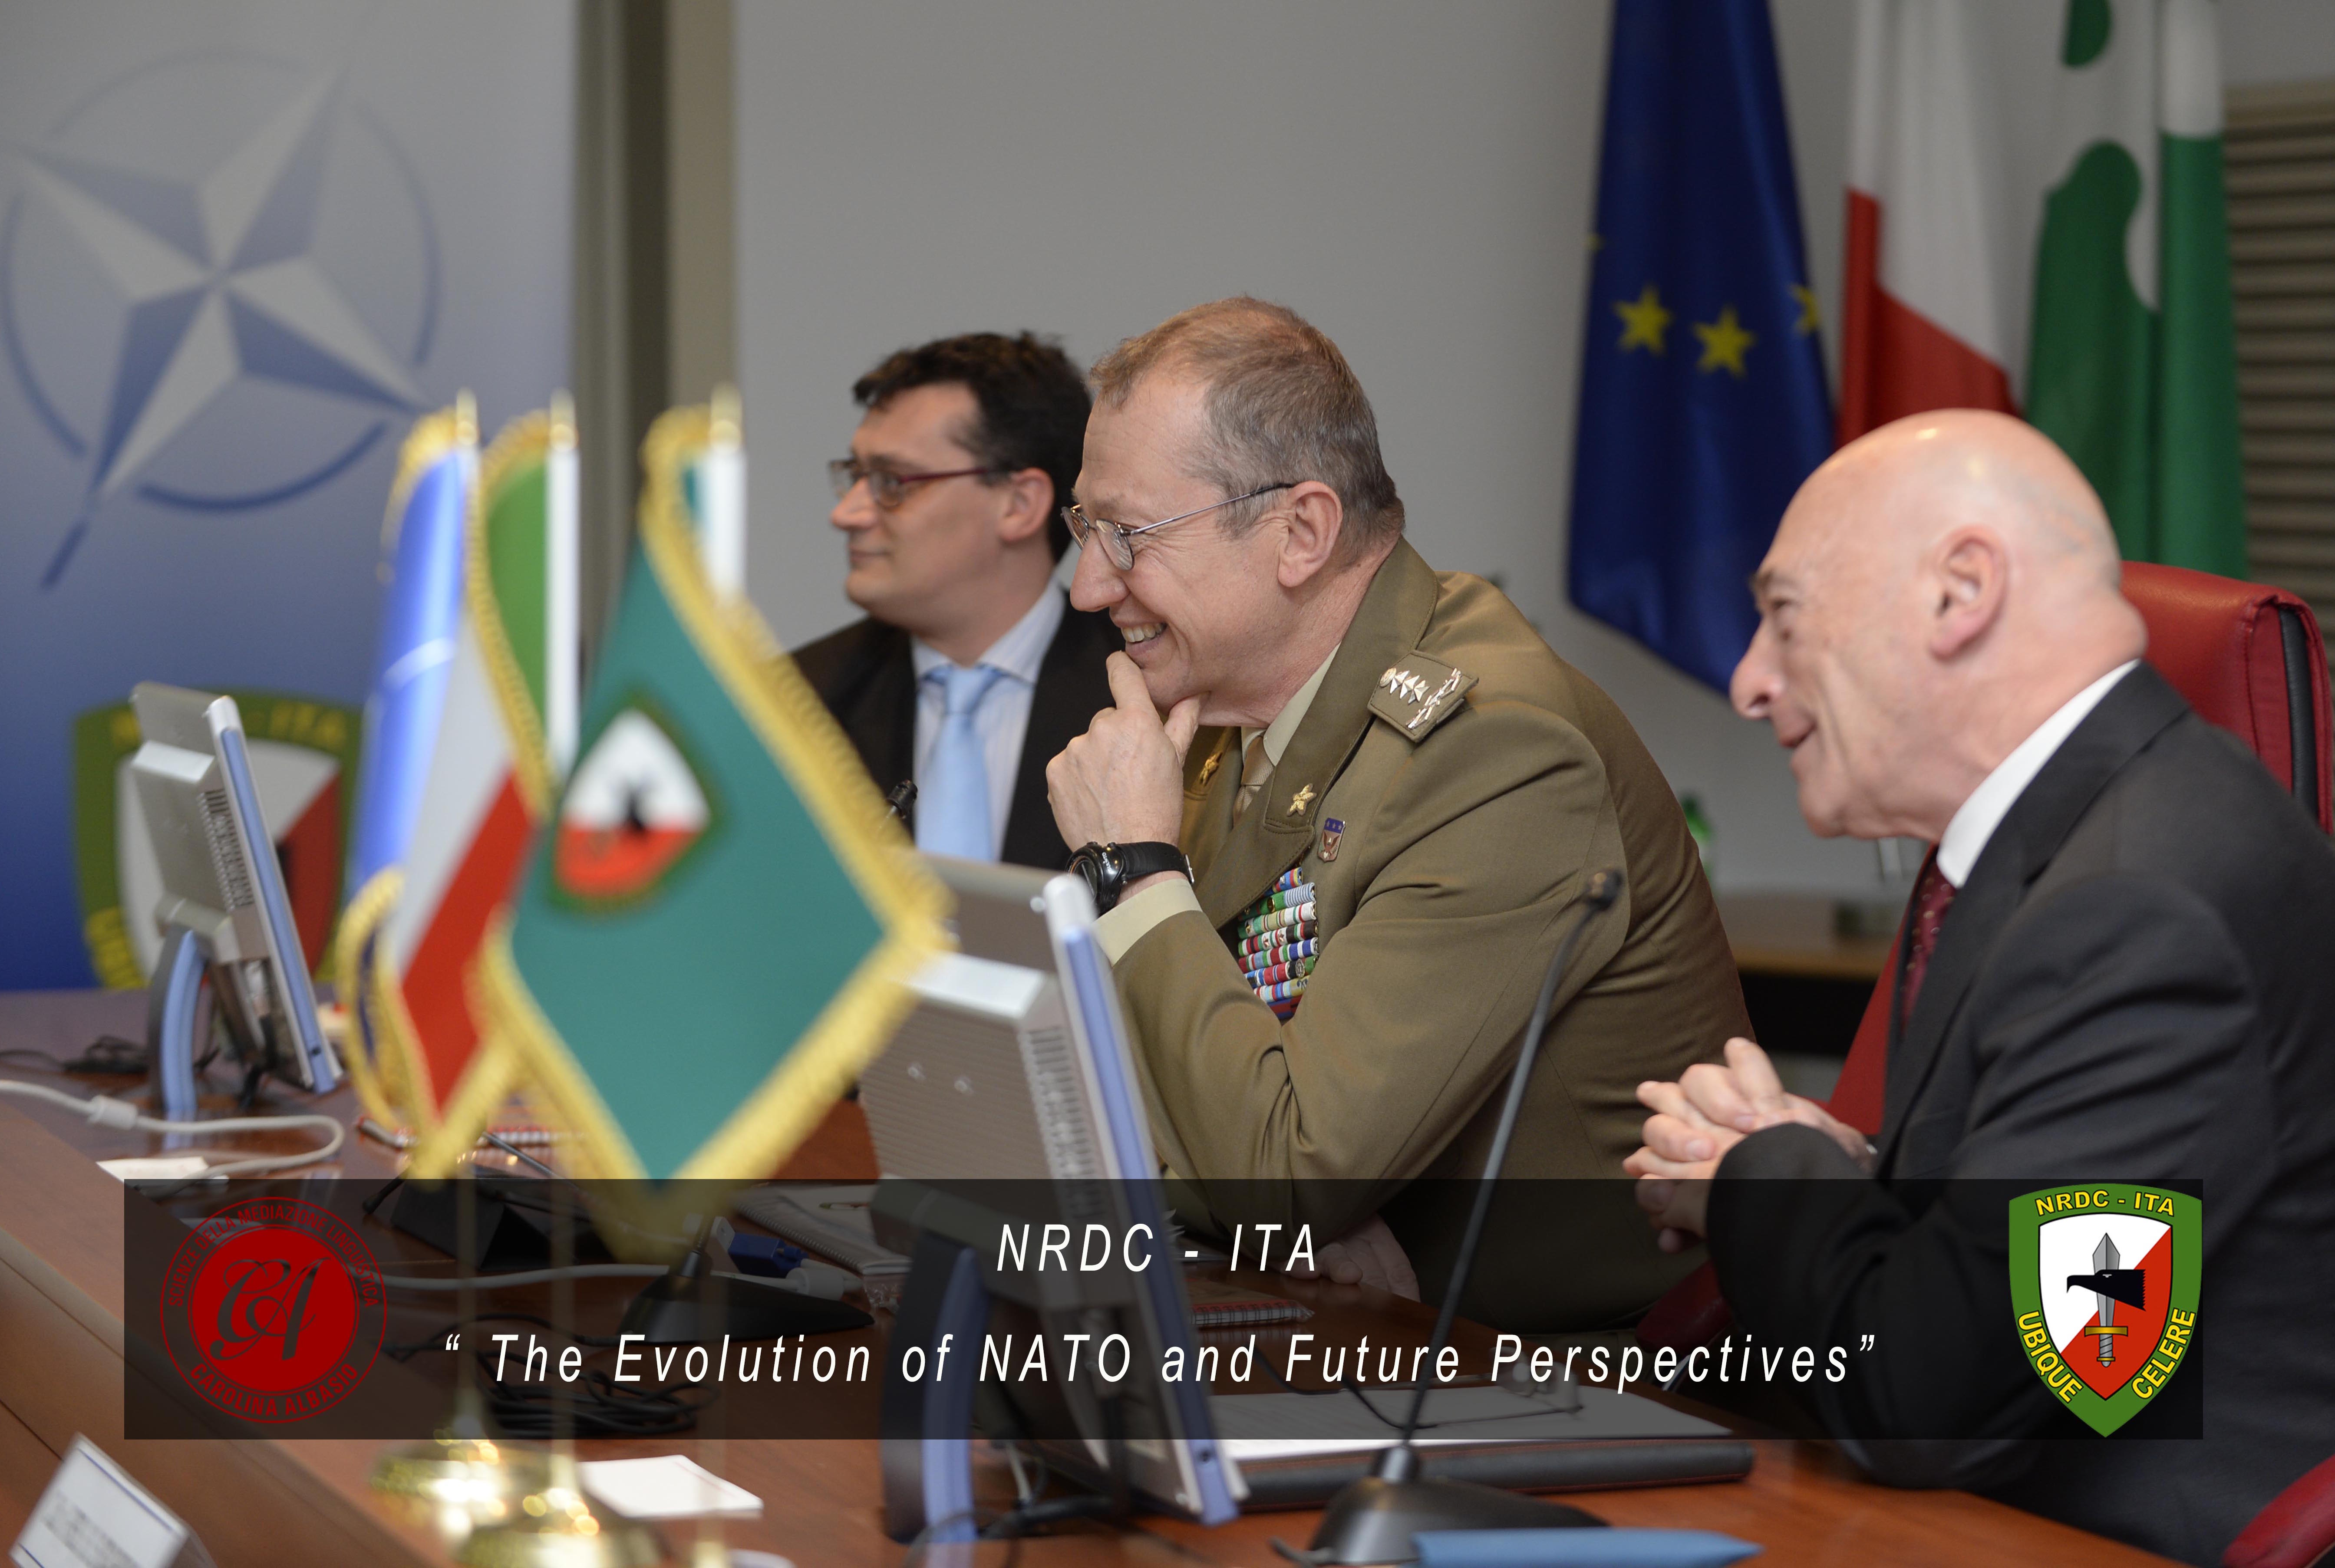 The evolution of NATO and future perspectives